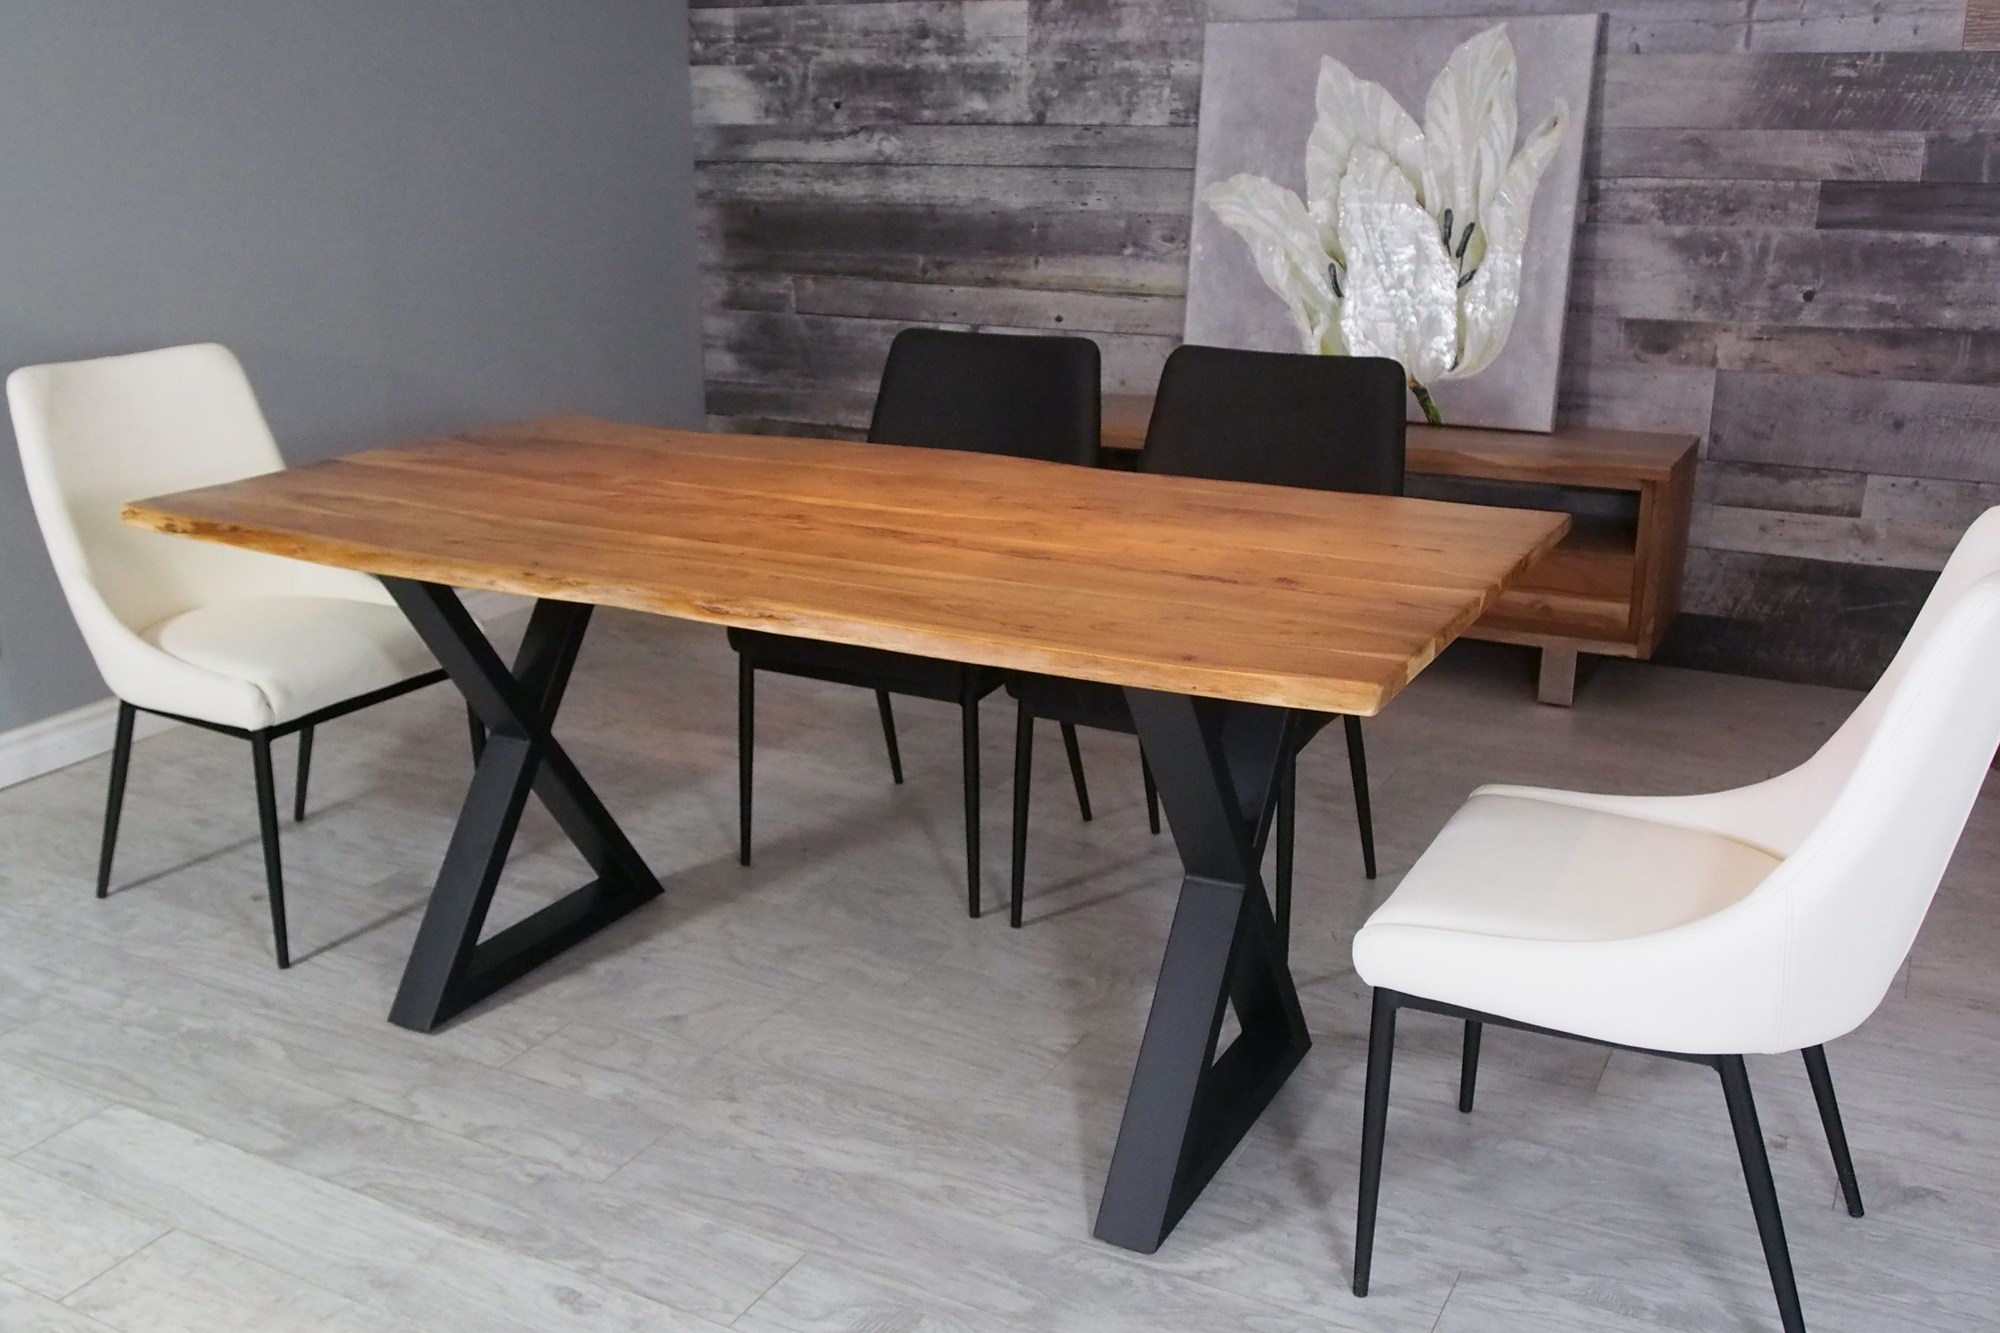 """Acacia Dining Tables With Black X Legs Pertaining To Widely Used Corcoran Acacia Live Edge Dining Table With Black X Legs – 67"""" (View 9 of 25)"""